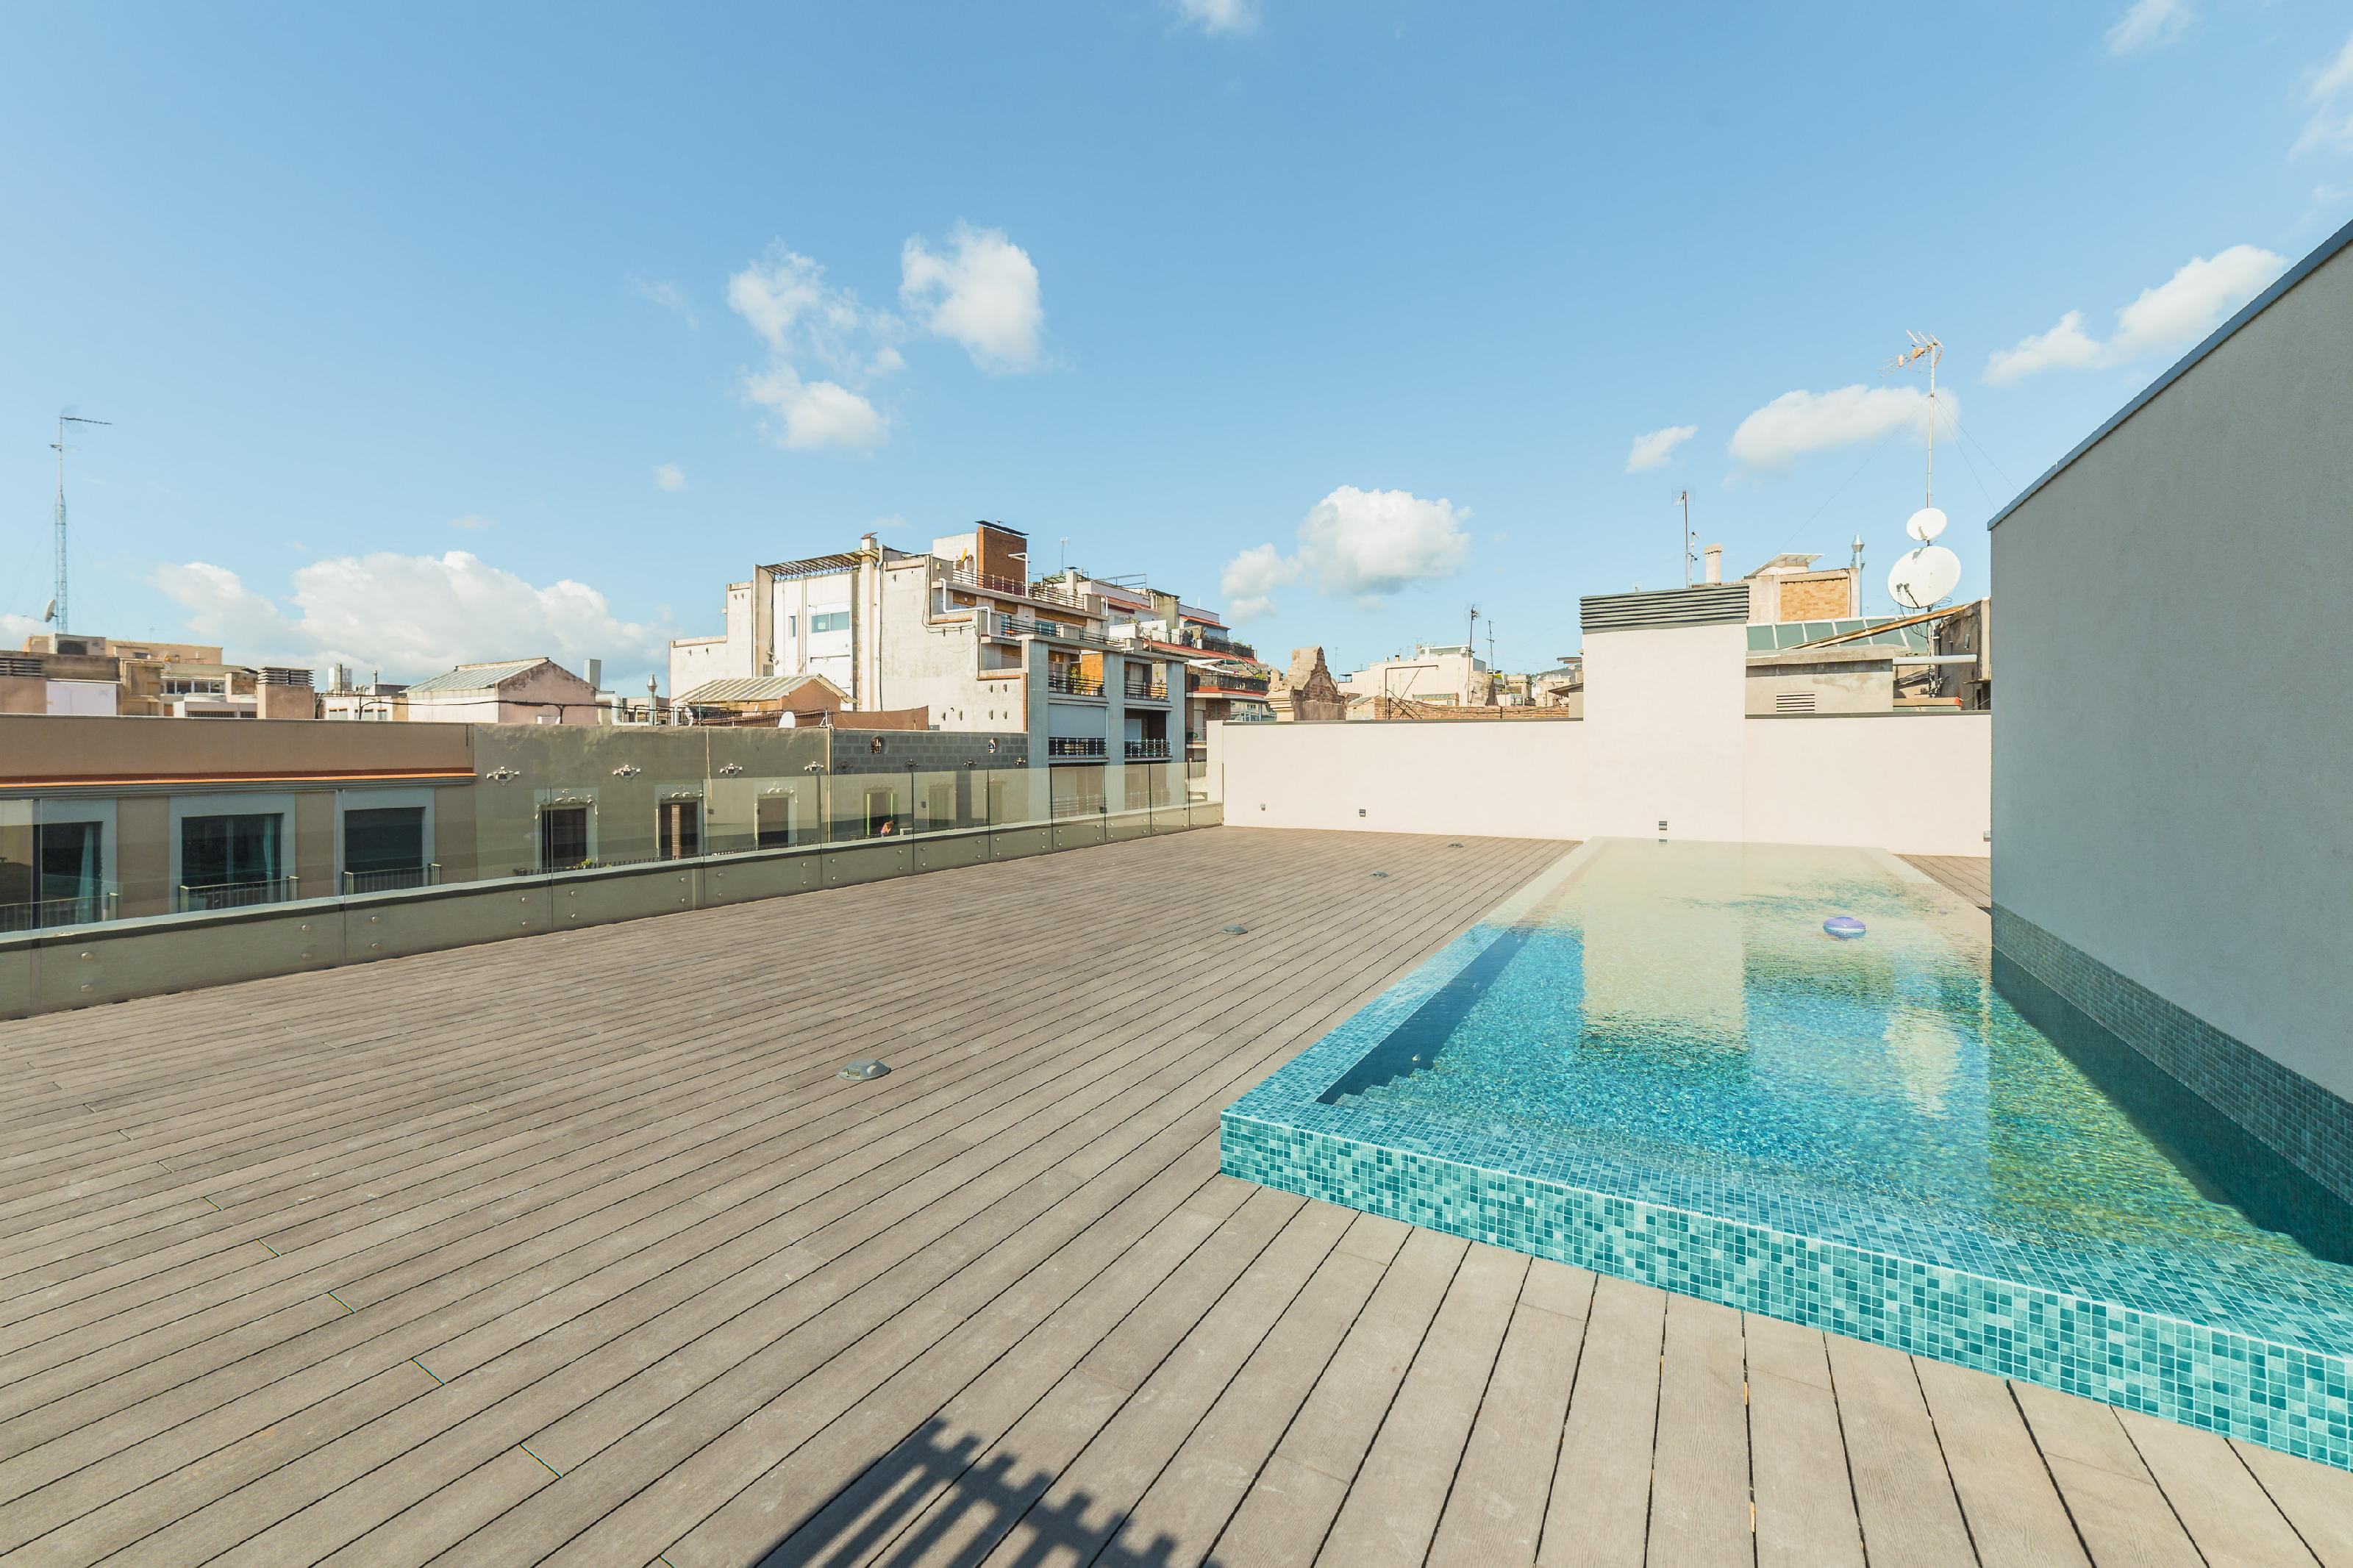 182474 Apartment for sale in Eixample, Old Left Eixample 39